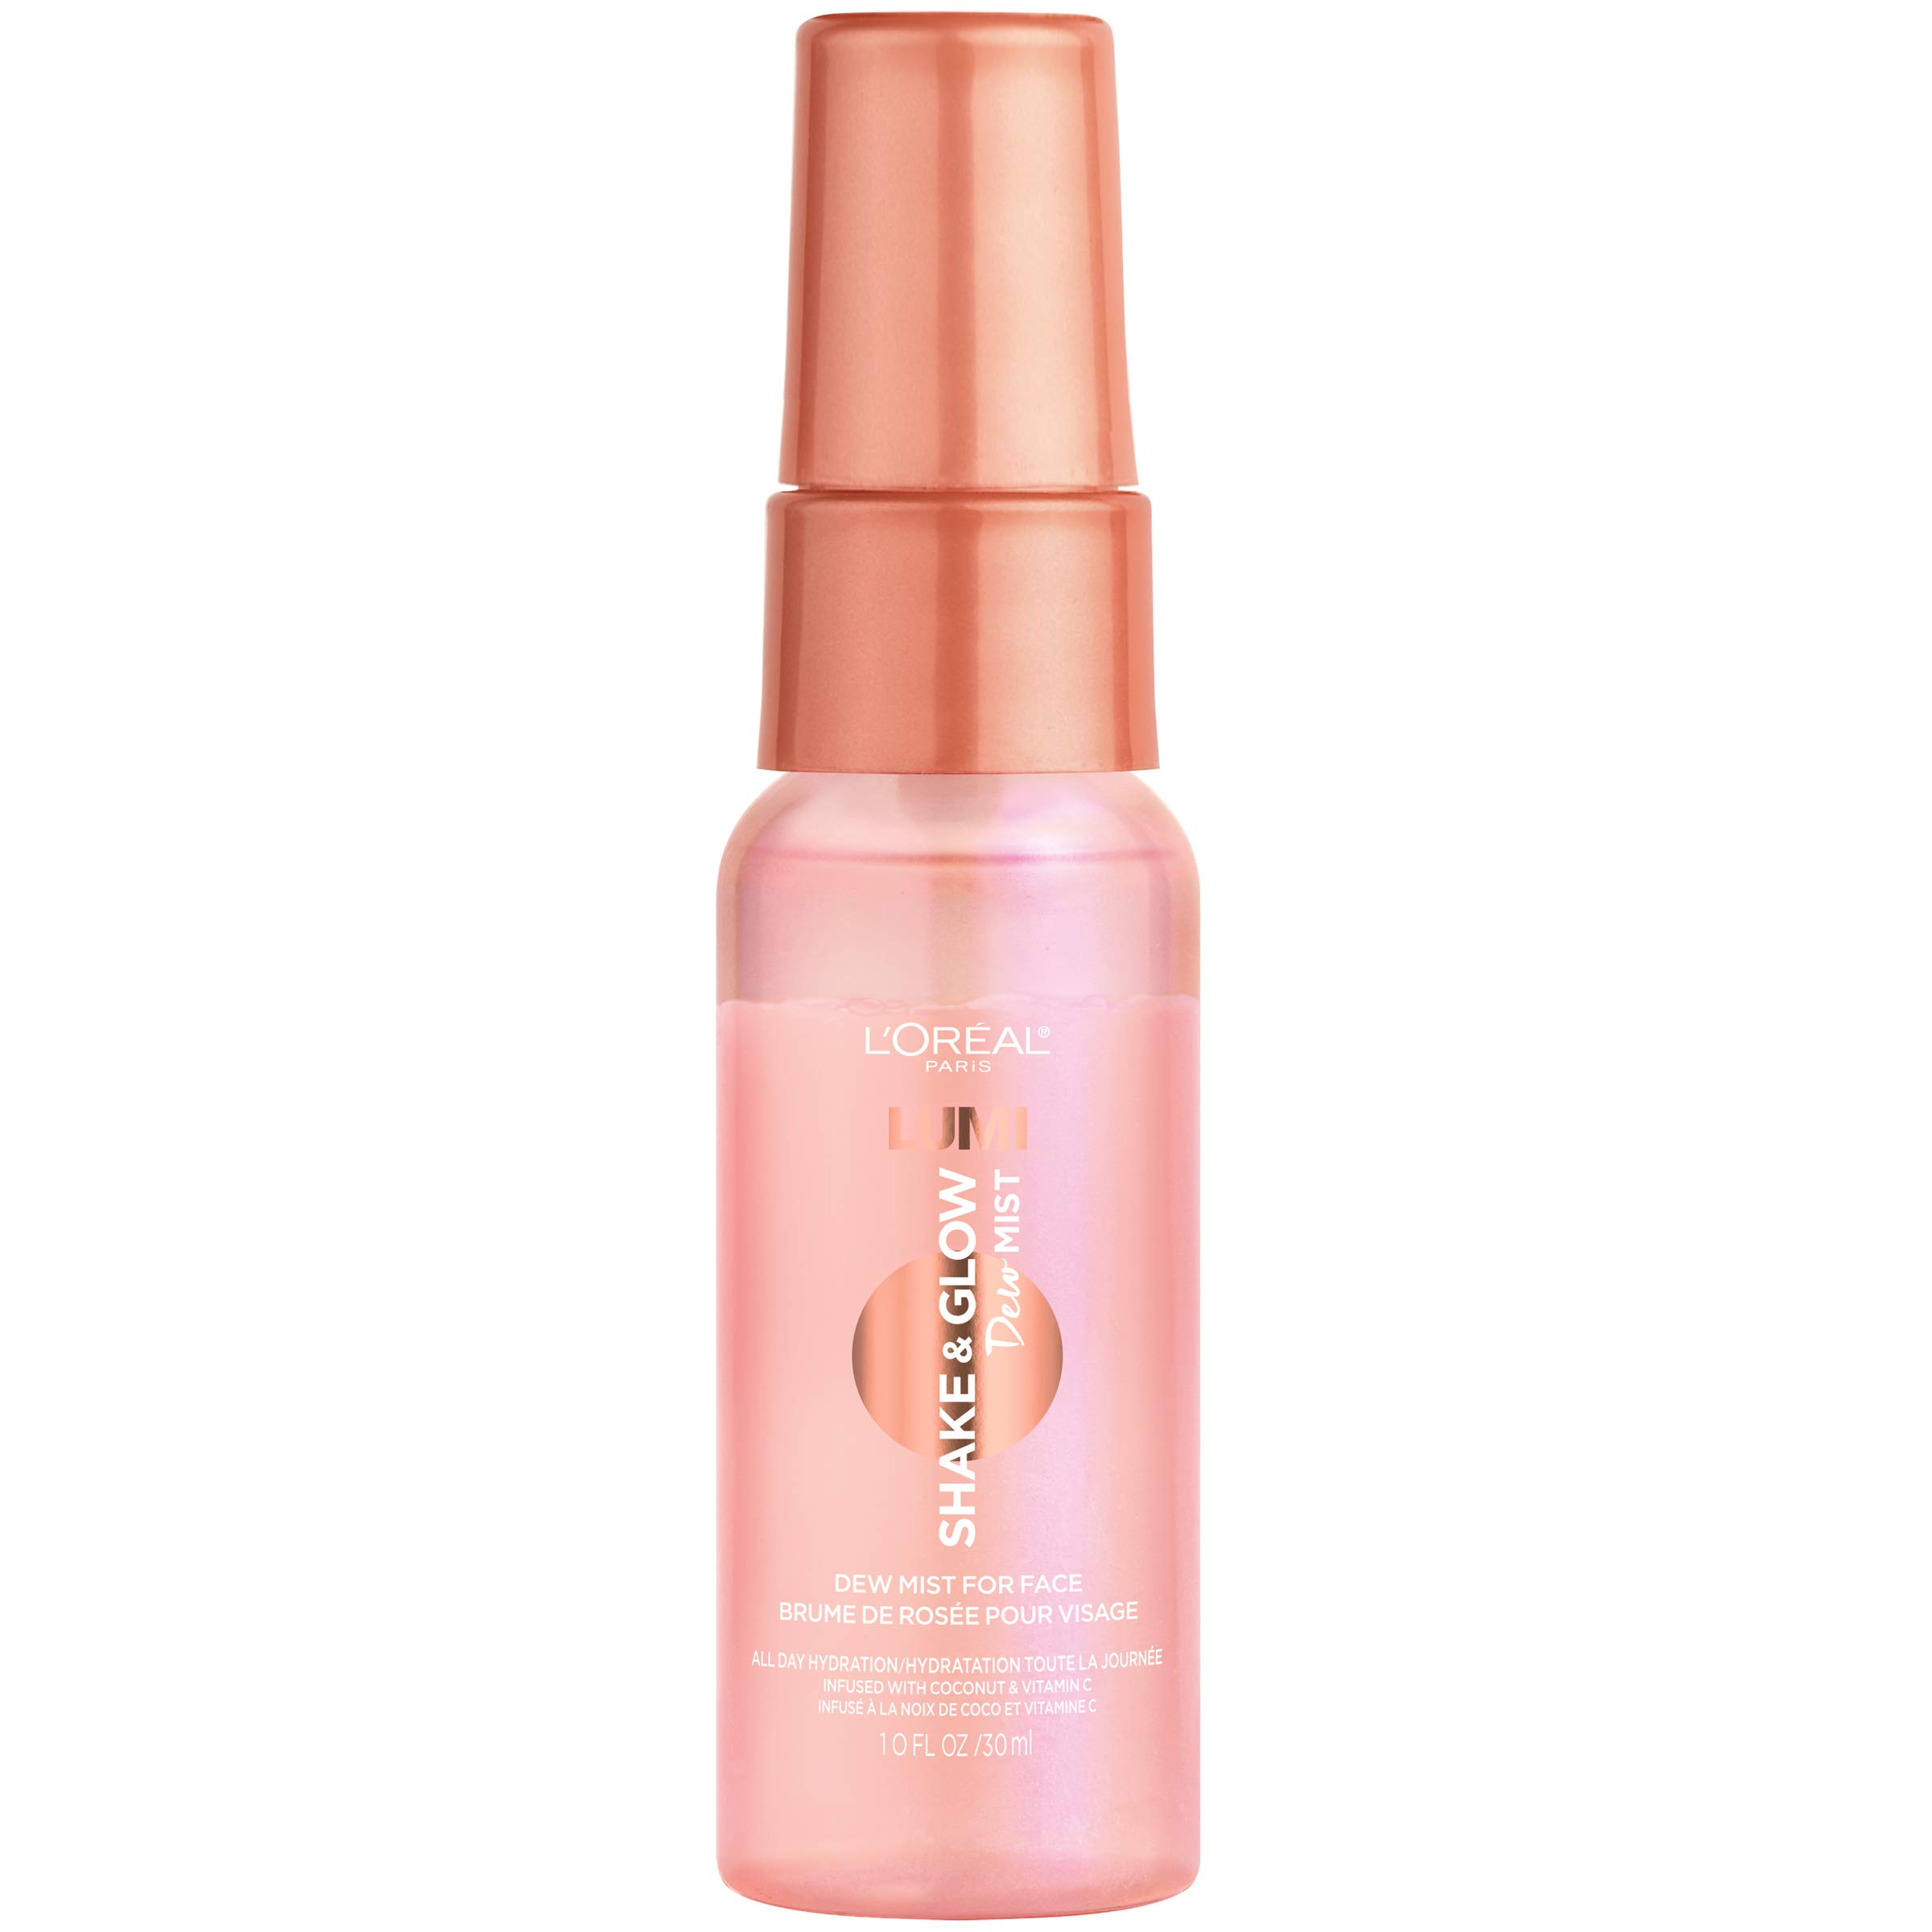 L'Oreal Paris Makeup LUMI Shake & Glow Dew Mist, Hydrating and Soothing Face Mist, Prep & Set Makeup, Energizes Skin with a Healthy Boost of Hydration, Natural Finish, 1 fl. oz.